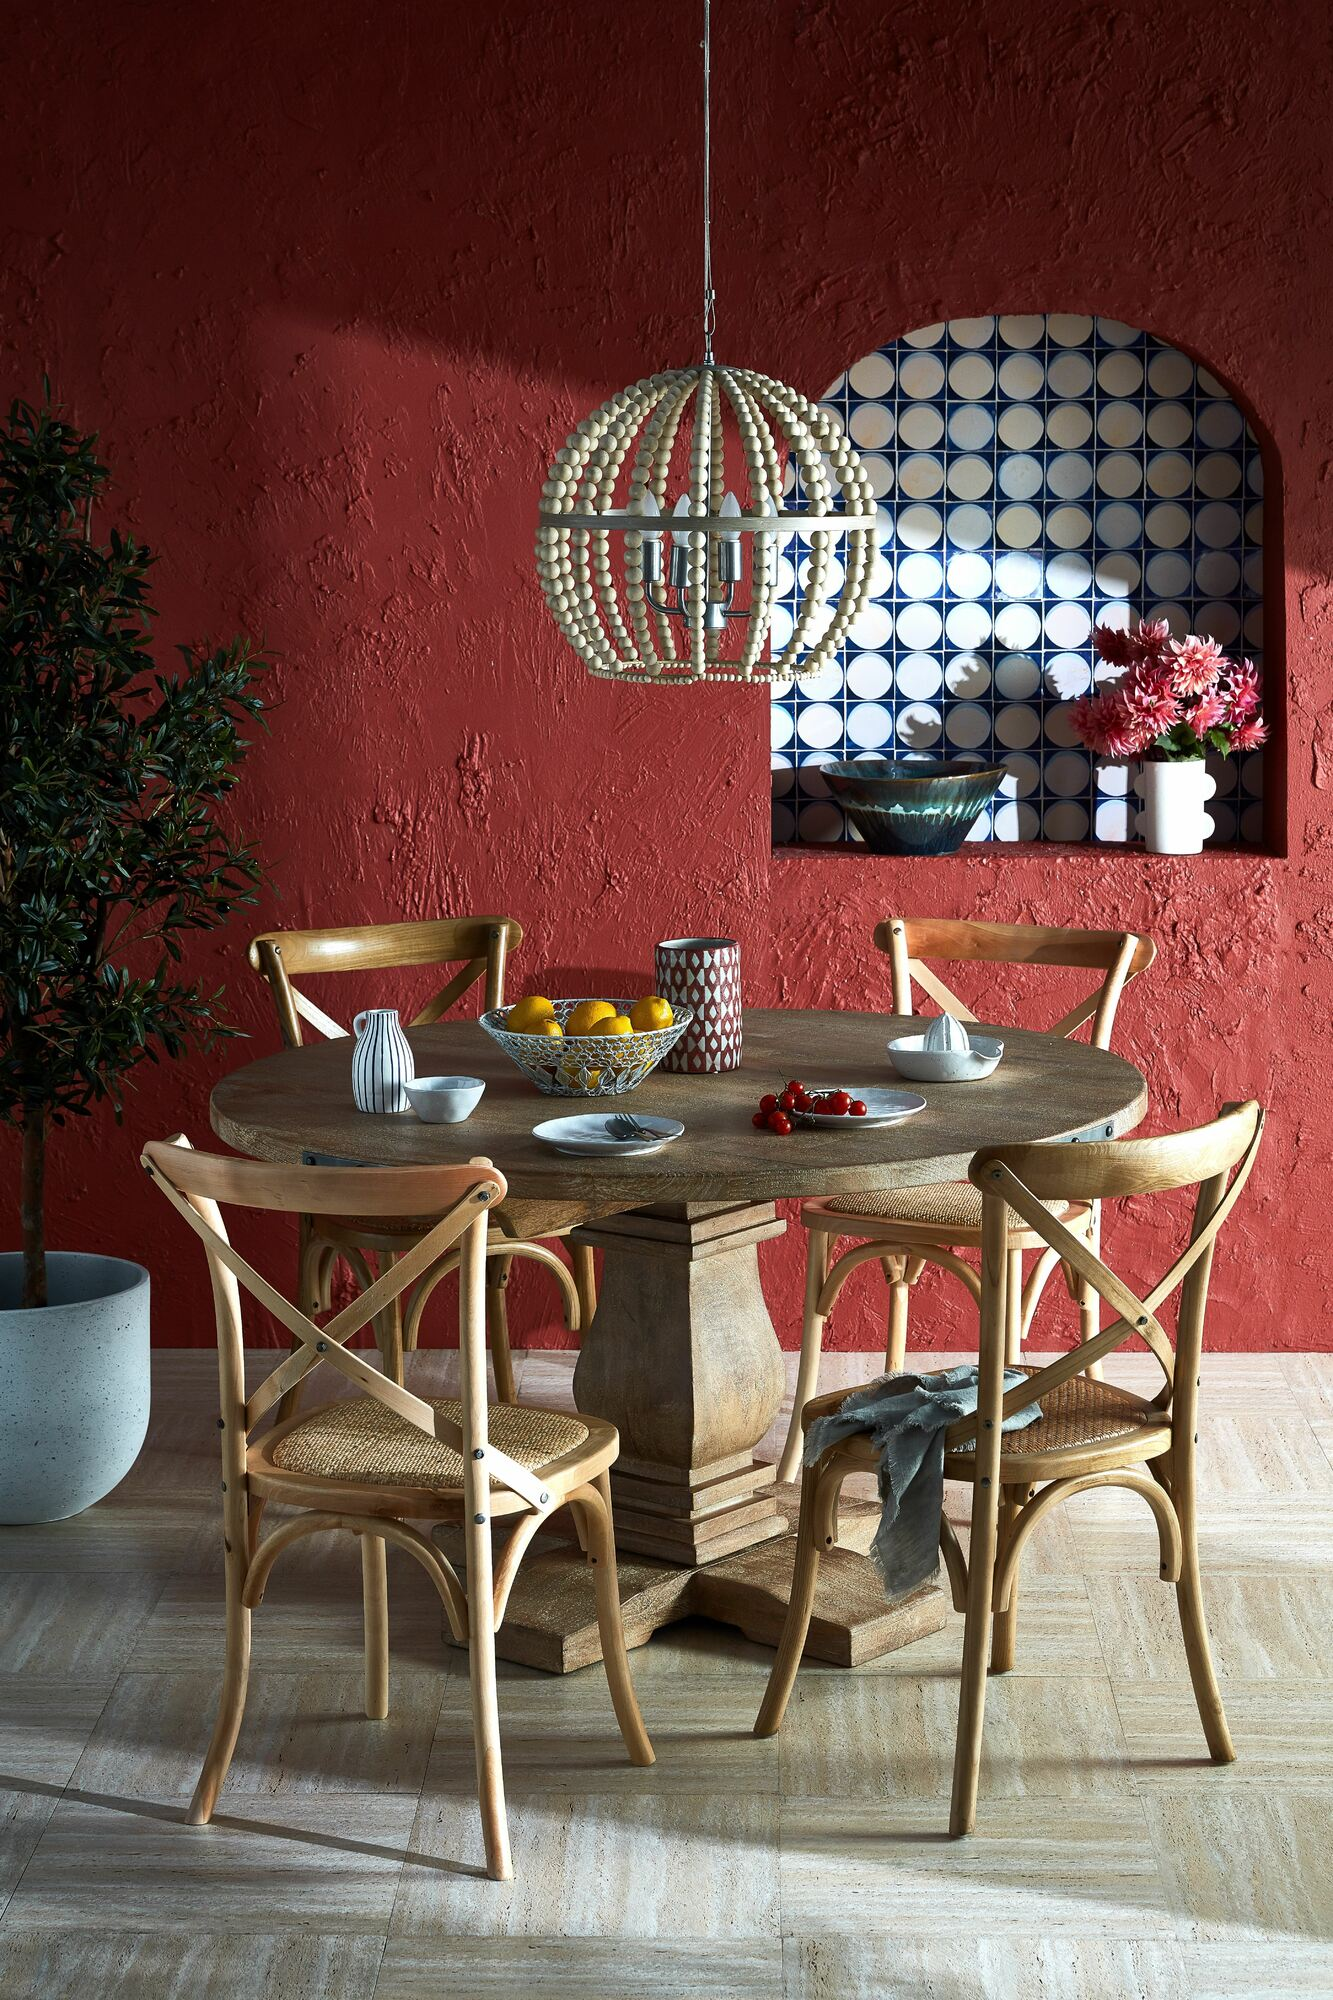 NEW Umbrie Round Dining Table - Dodicci,Dining Tables | eBay